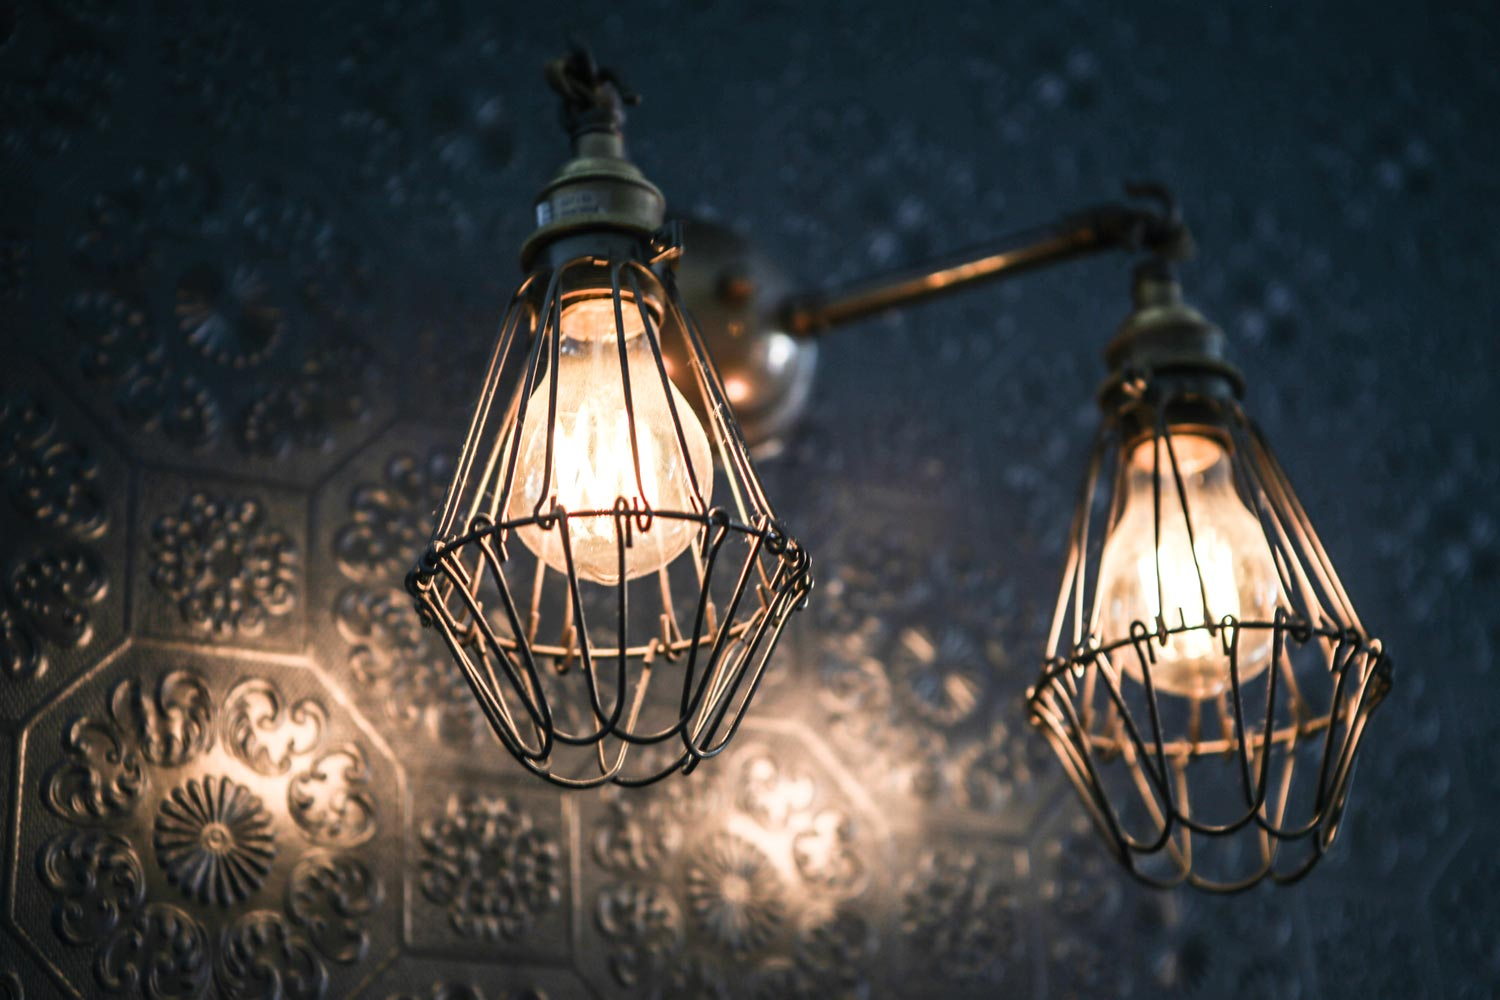 Industrial lighting helps enliven the traditional charm at O'Reilly's Irish pub, Brussels